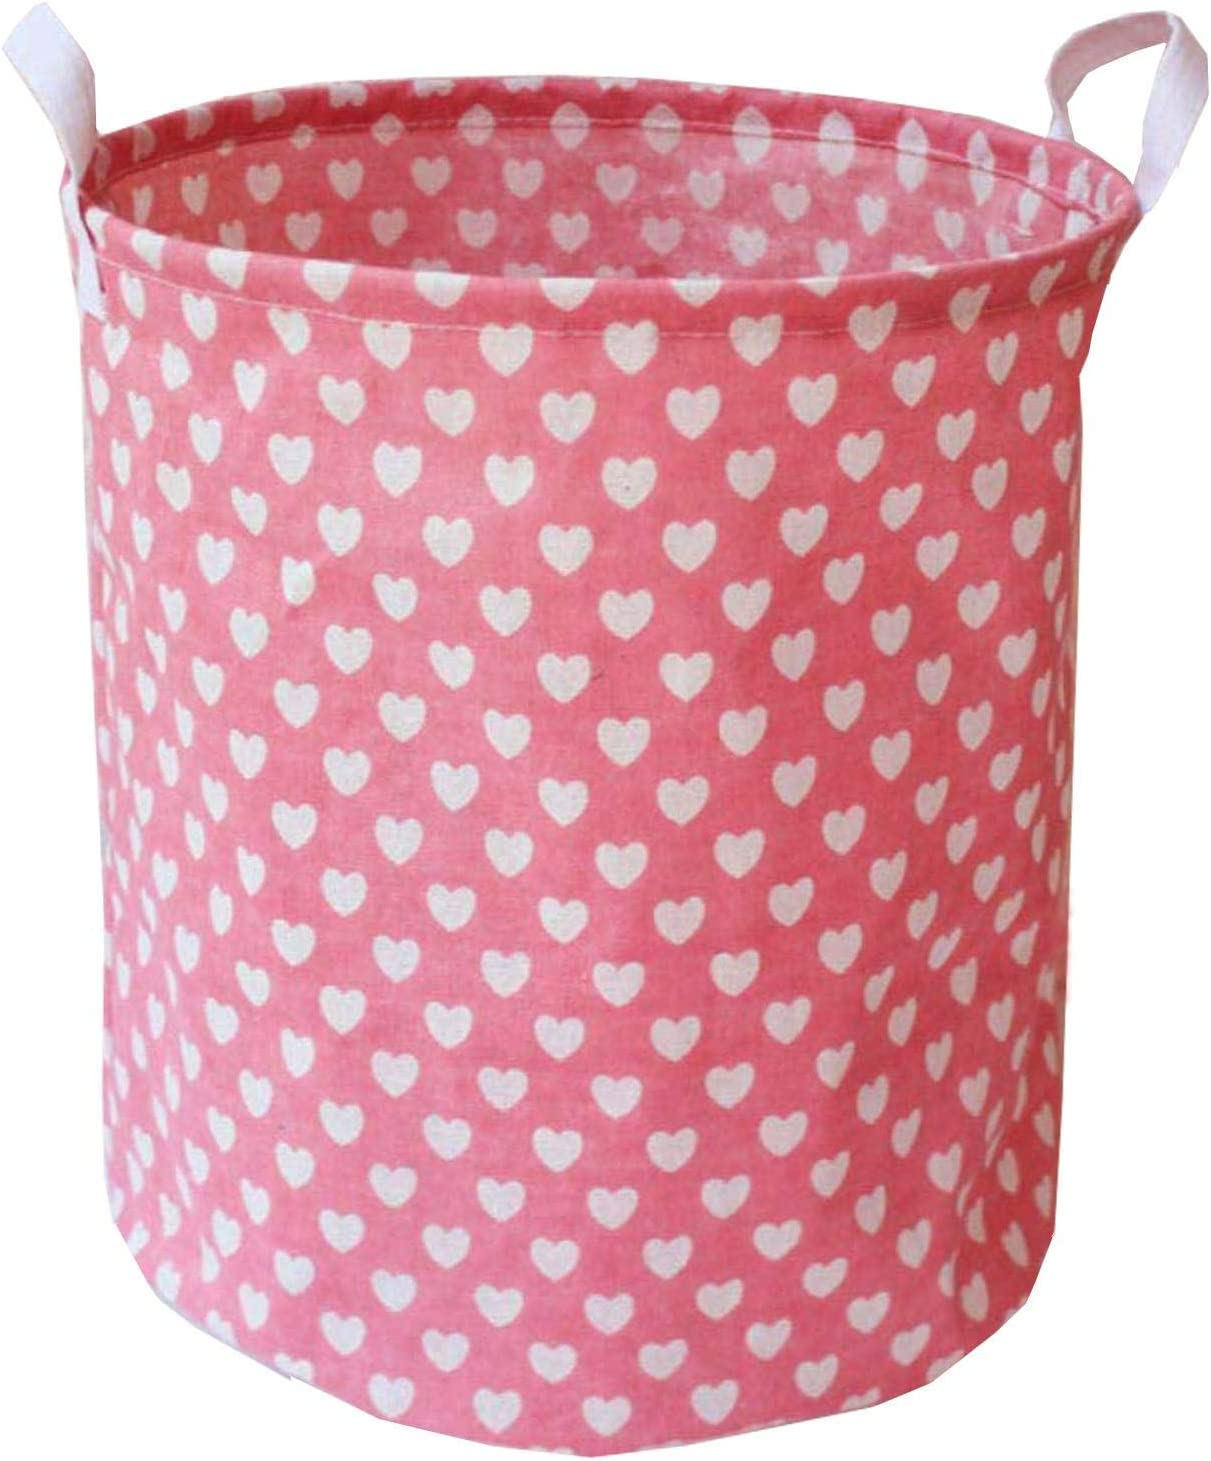 ZUEXT Collapsible Storage Bin with Pink Love Heart 19.7x15.7 Inch, Extra Large Canvas Laundry Hamper, Foldable Clothes Basket for Girls Baby Shower Birthday Gift Basket, Nursery Room Bedroom Toy Bins